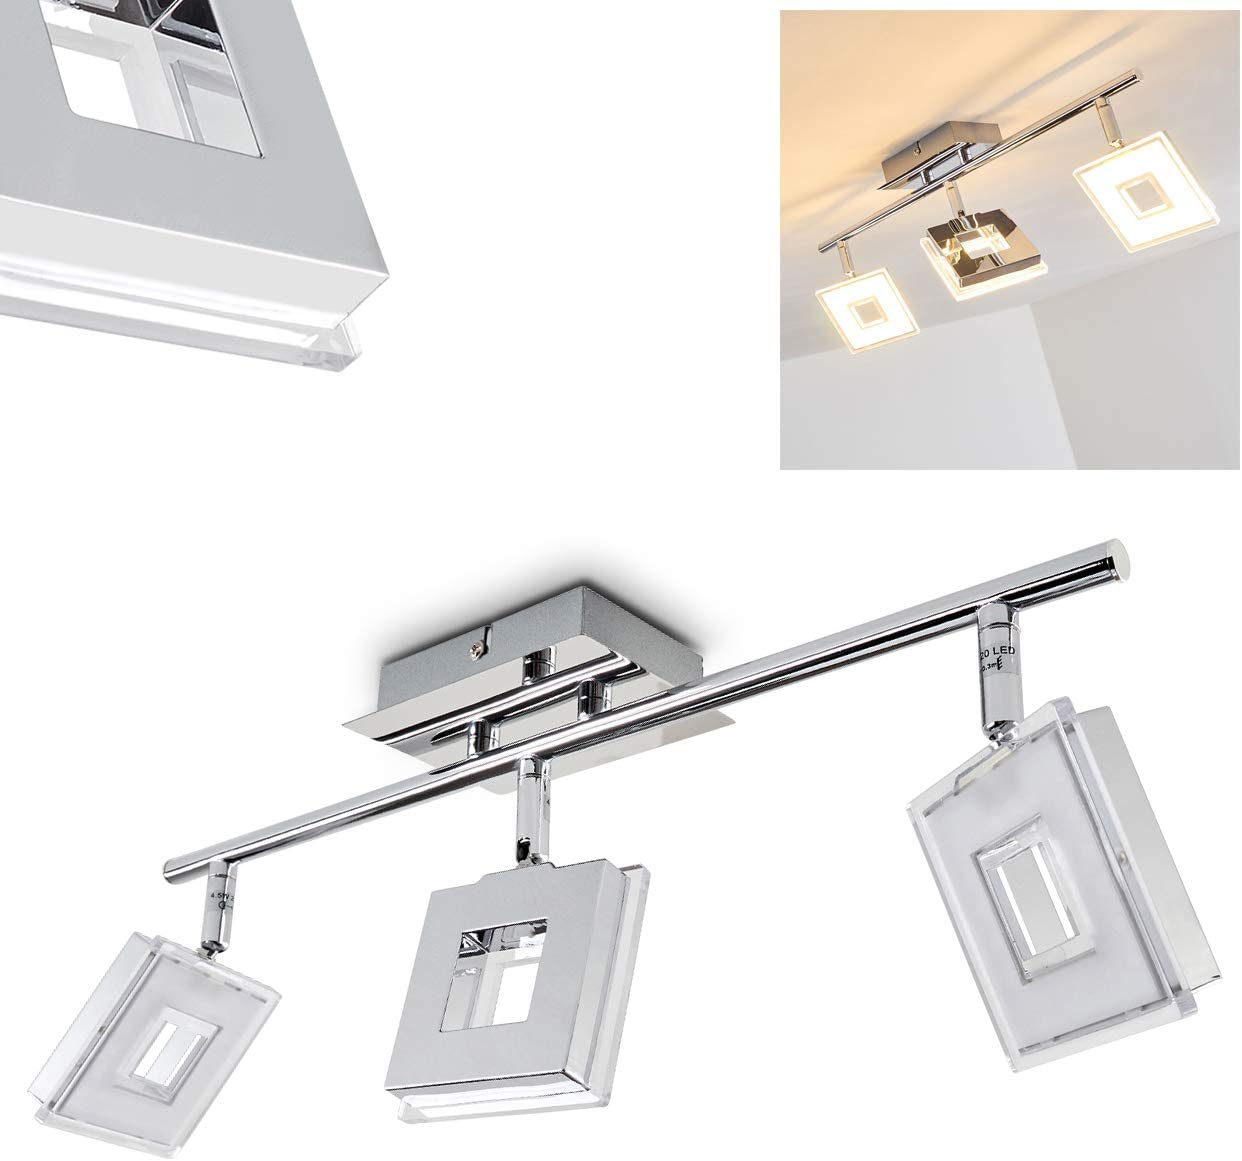 Led Ceiling Light Spotlight Bar Three Adjustable Spots 3 X 4 5w 350 Lumen Per Spot 3000 Kelvin Amazon Co Uk Lighting